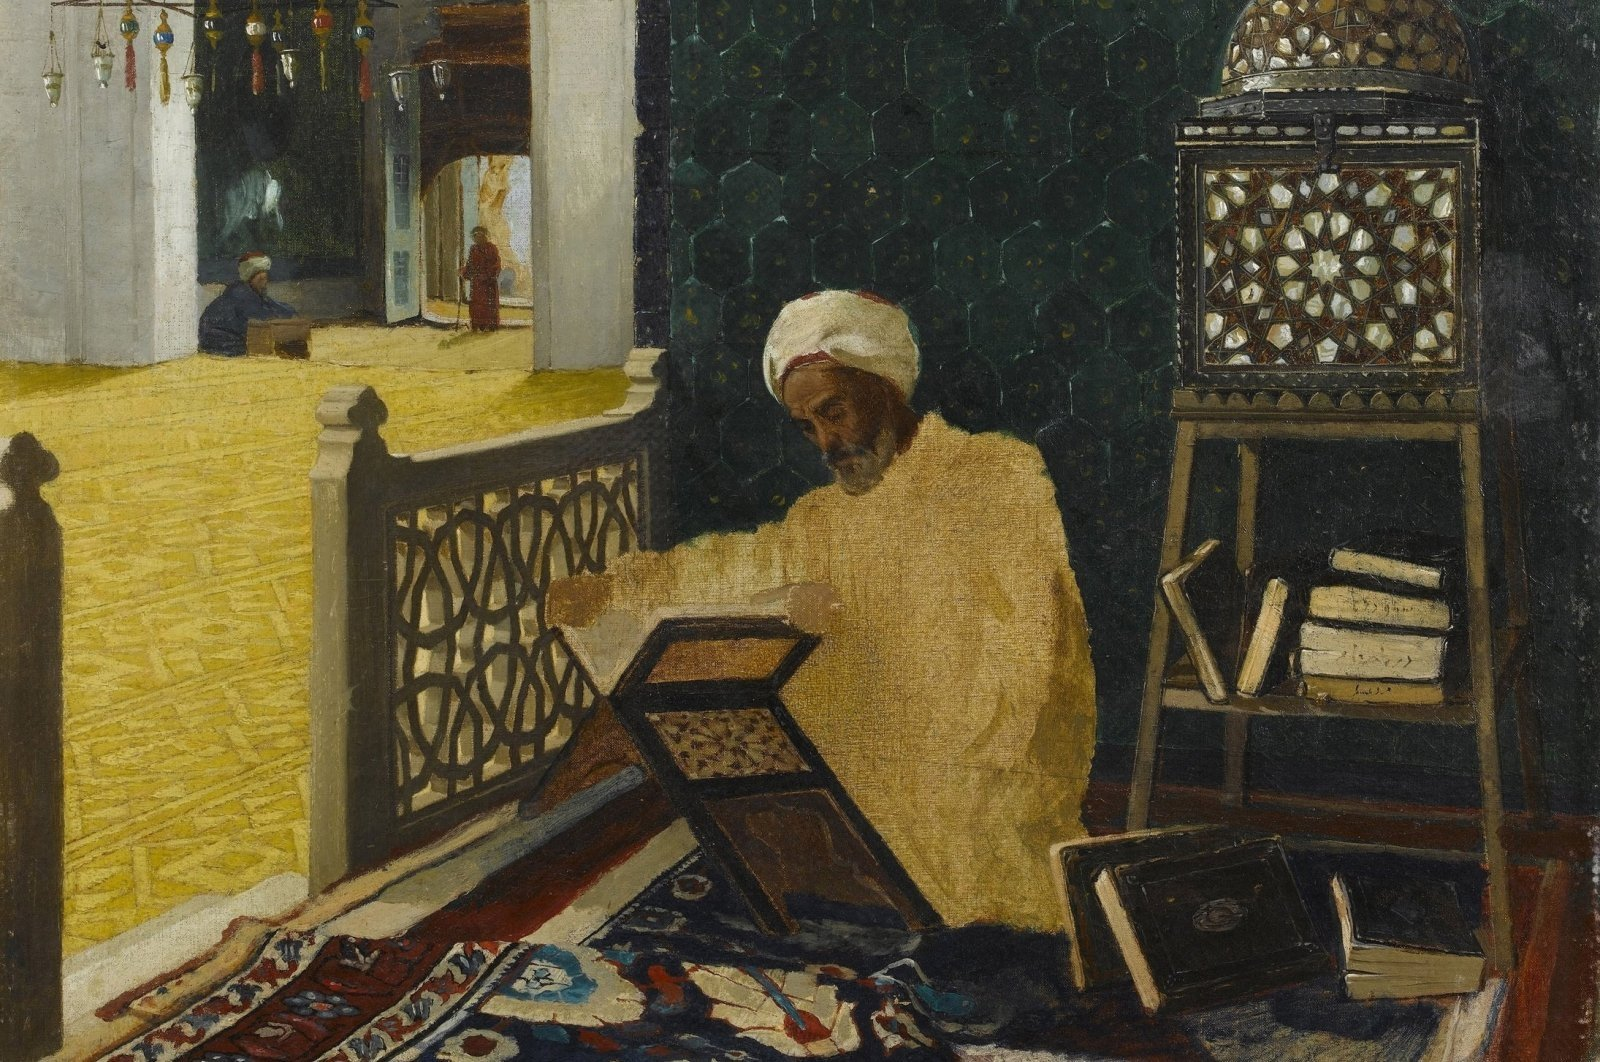 Turkish painter Osman Hamdi Bey's 'Reciting the Quran' painting from the collection of Sakıp Sabancı Museum, Istanbul. (Getty Images.)